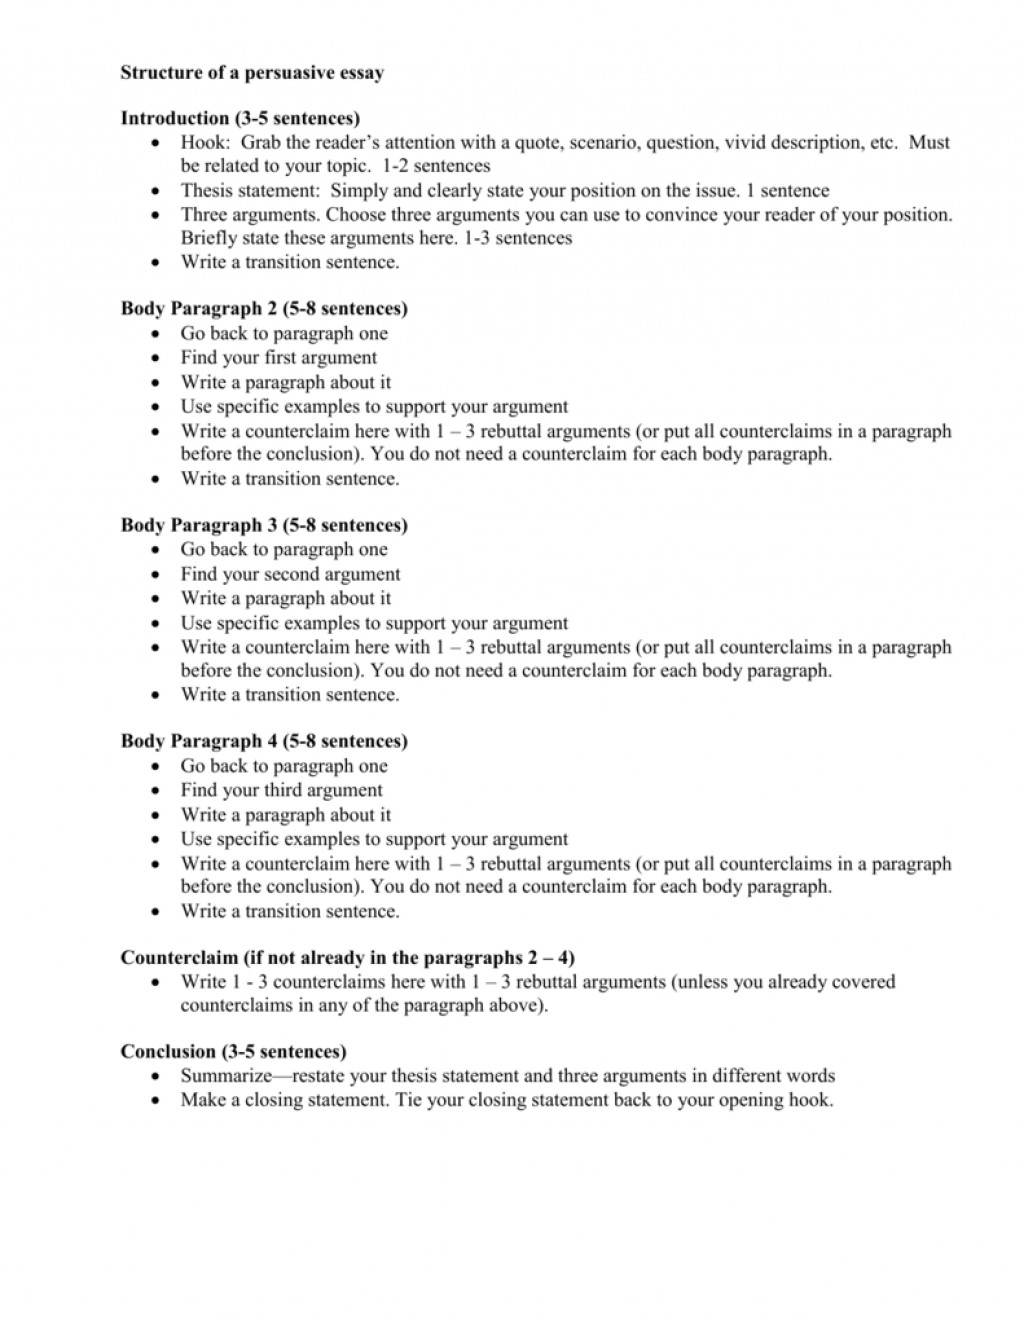 020 Structure Of Five Paragraph Persuasive Essay Closing Sentences For Essays 007464539 1 Conclusion Archaicawful Sentence Examples College Large